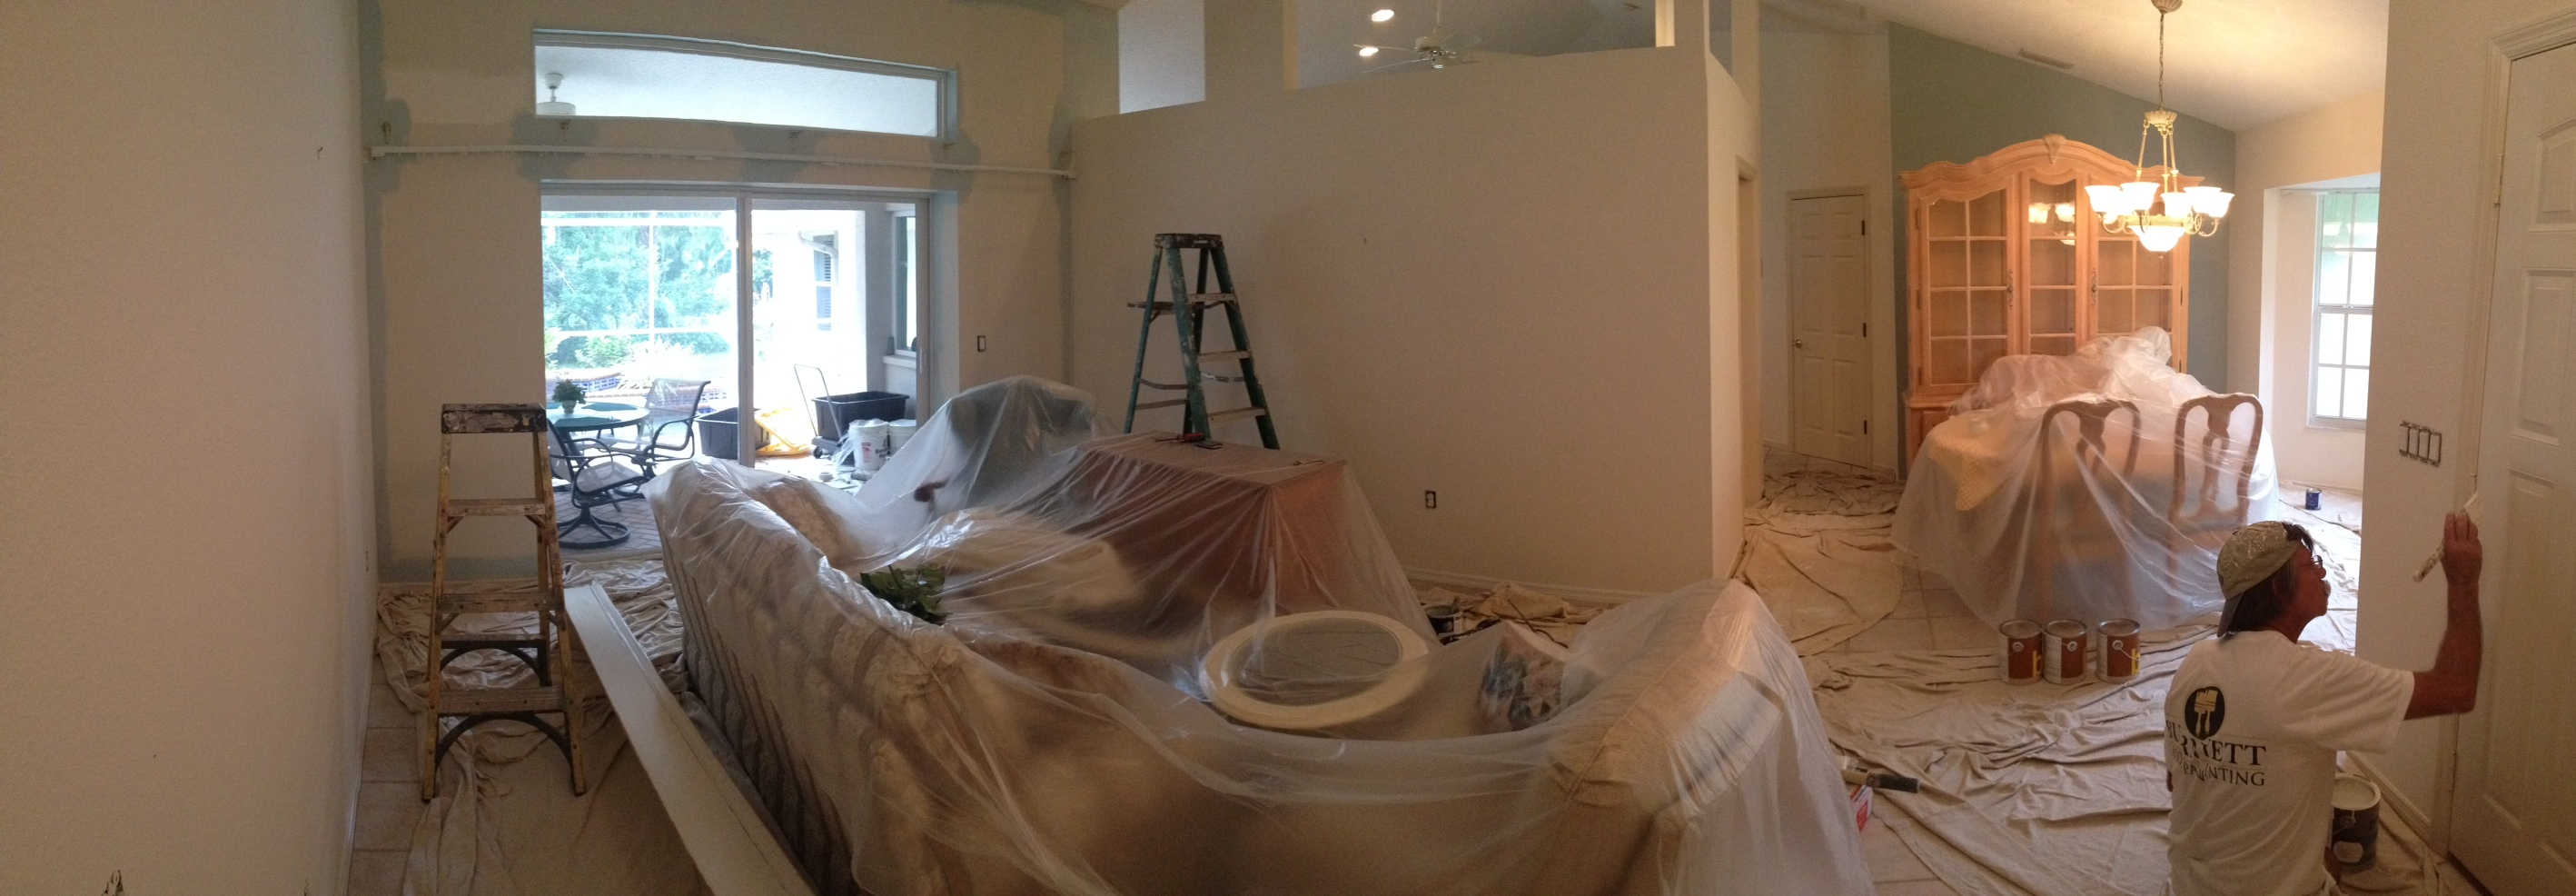 Interior Repaint Means Covering All Exposed Furniture